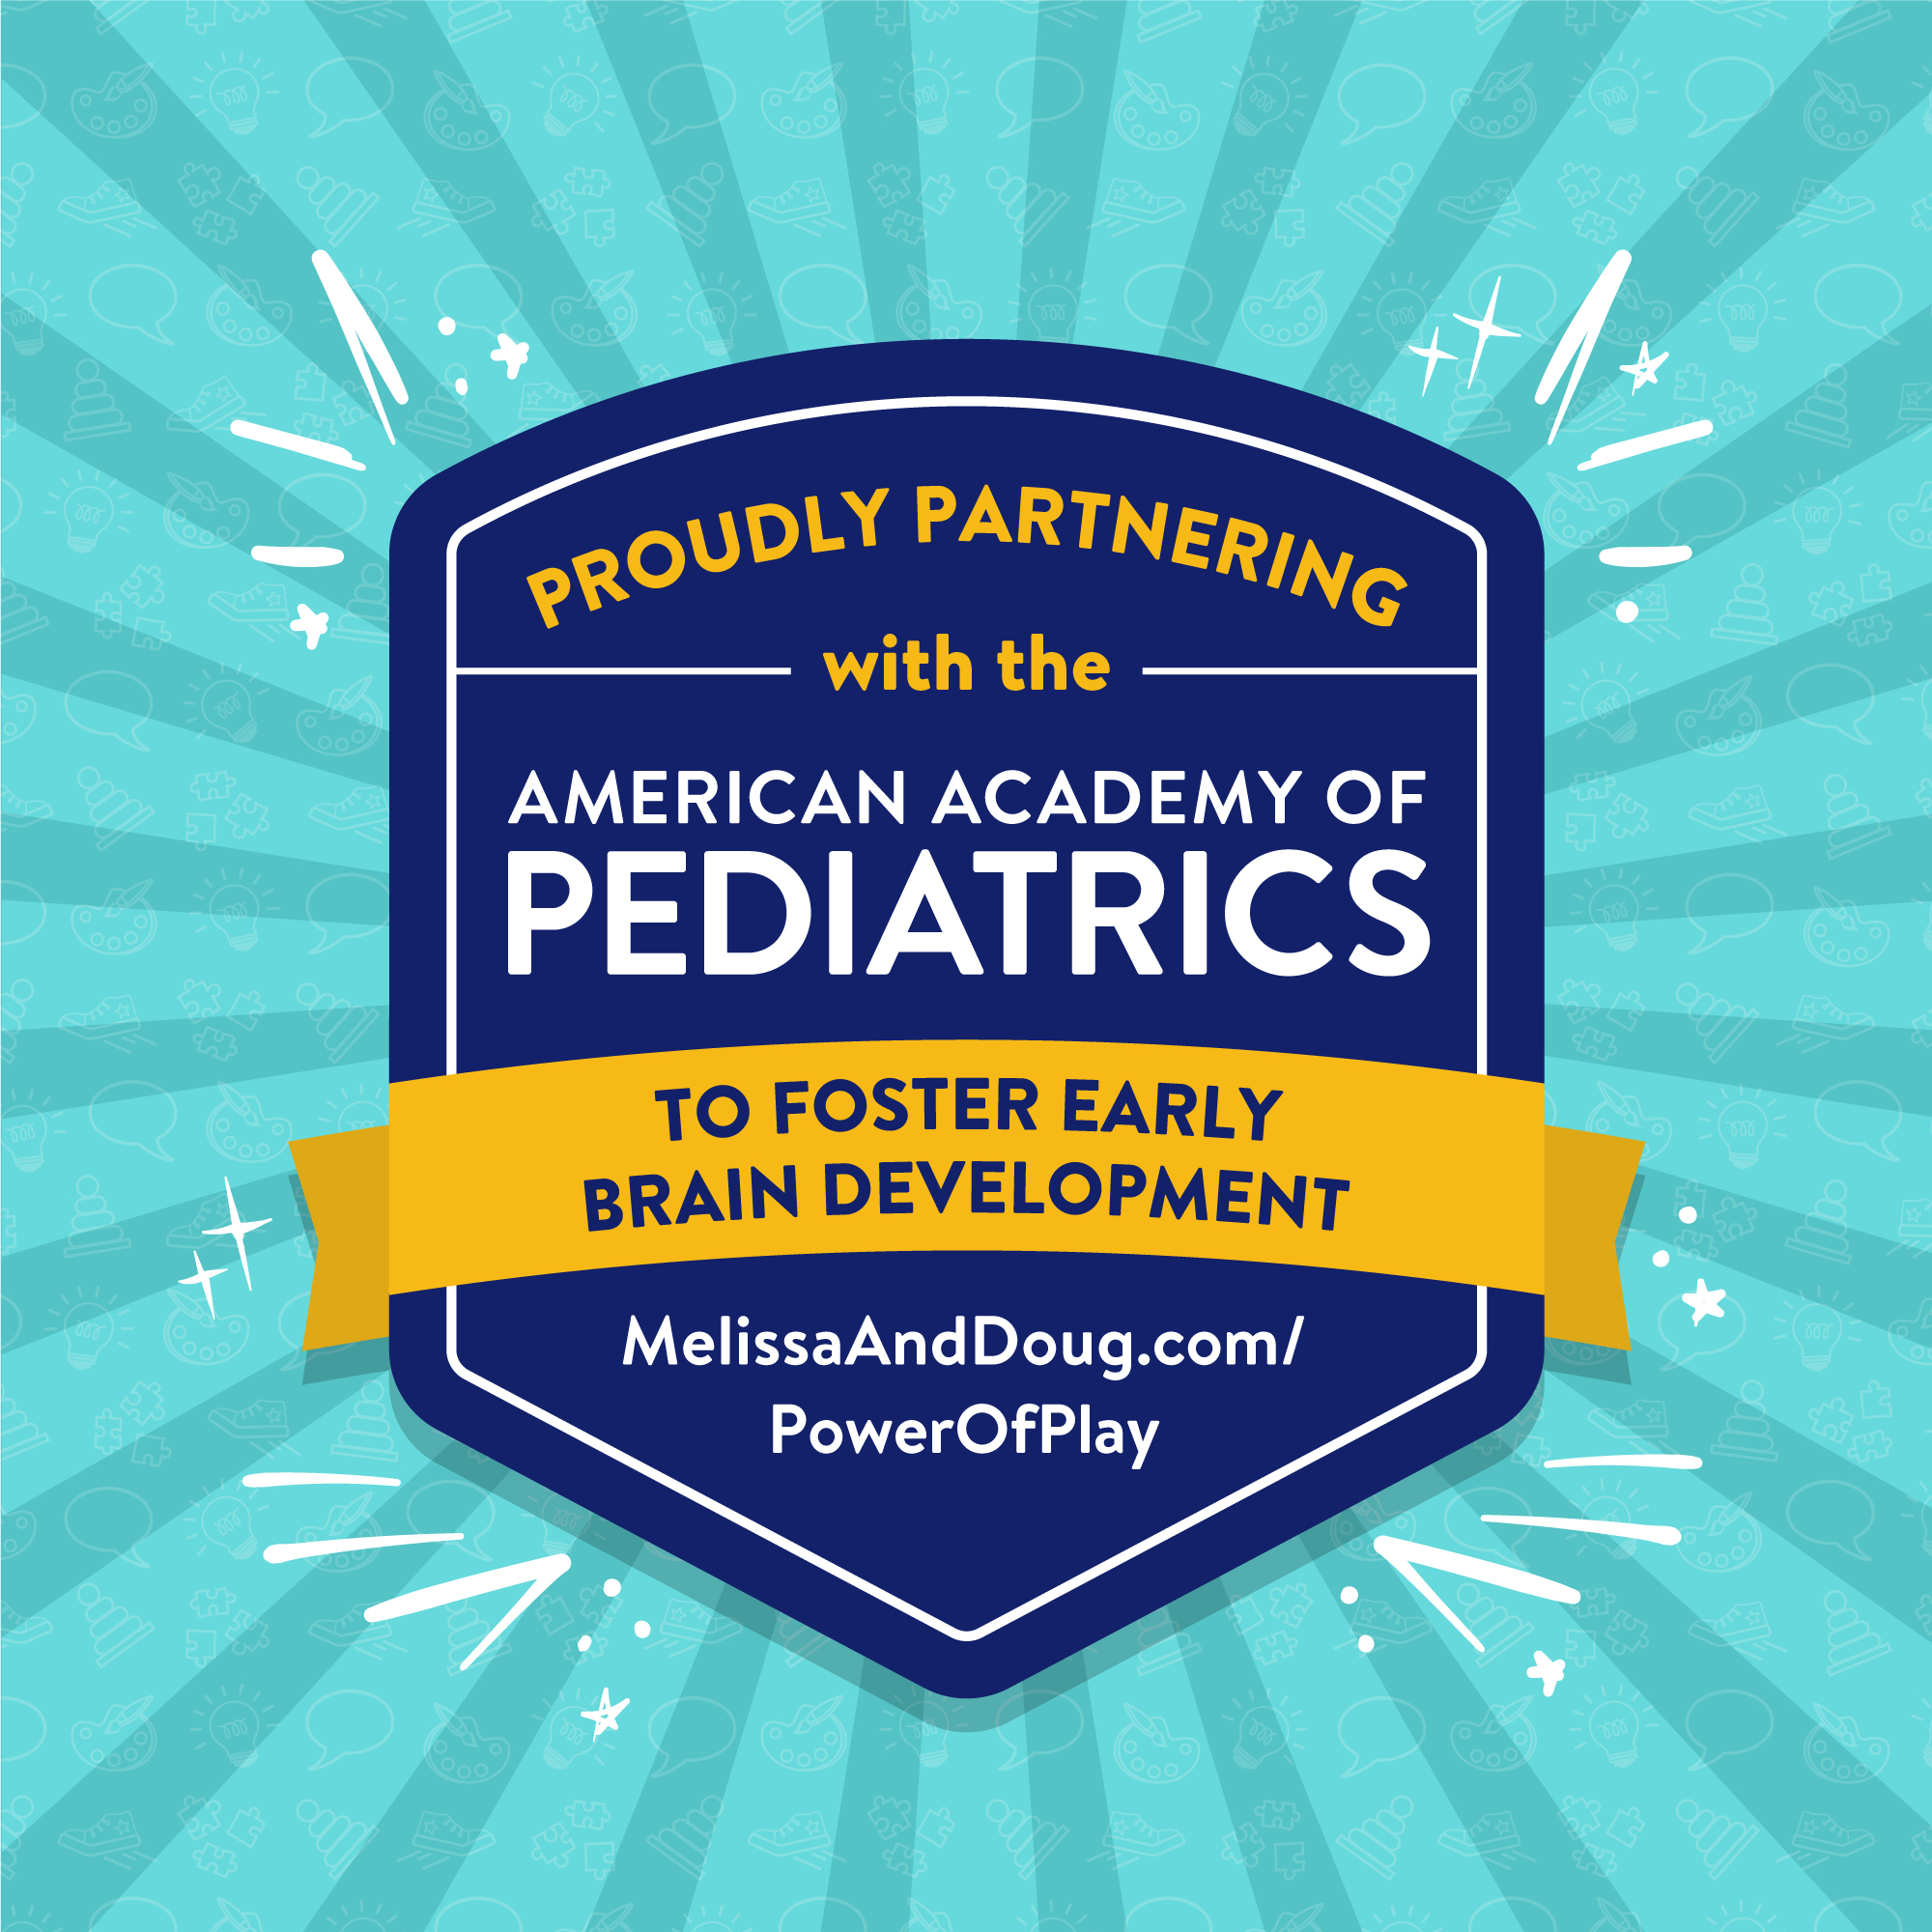 The Power of Play: Why We Are Partnering with Pediatricians to Start a Revolution